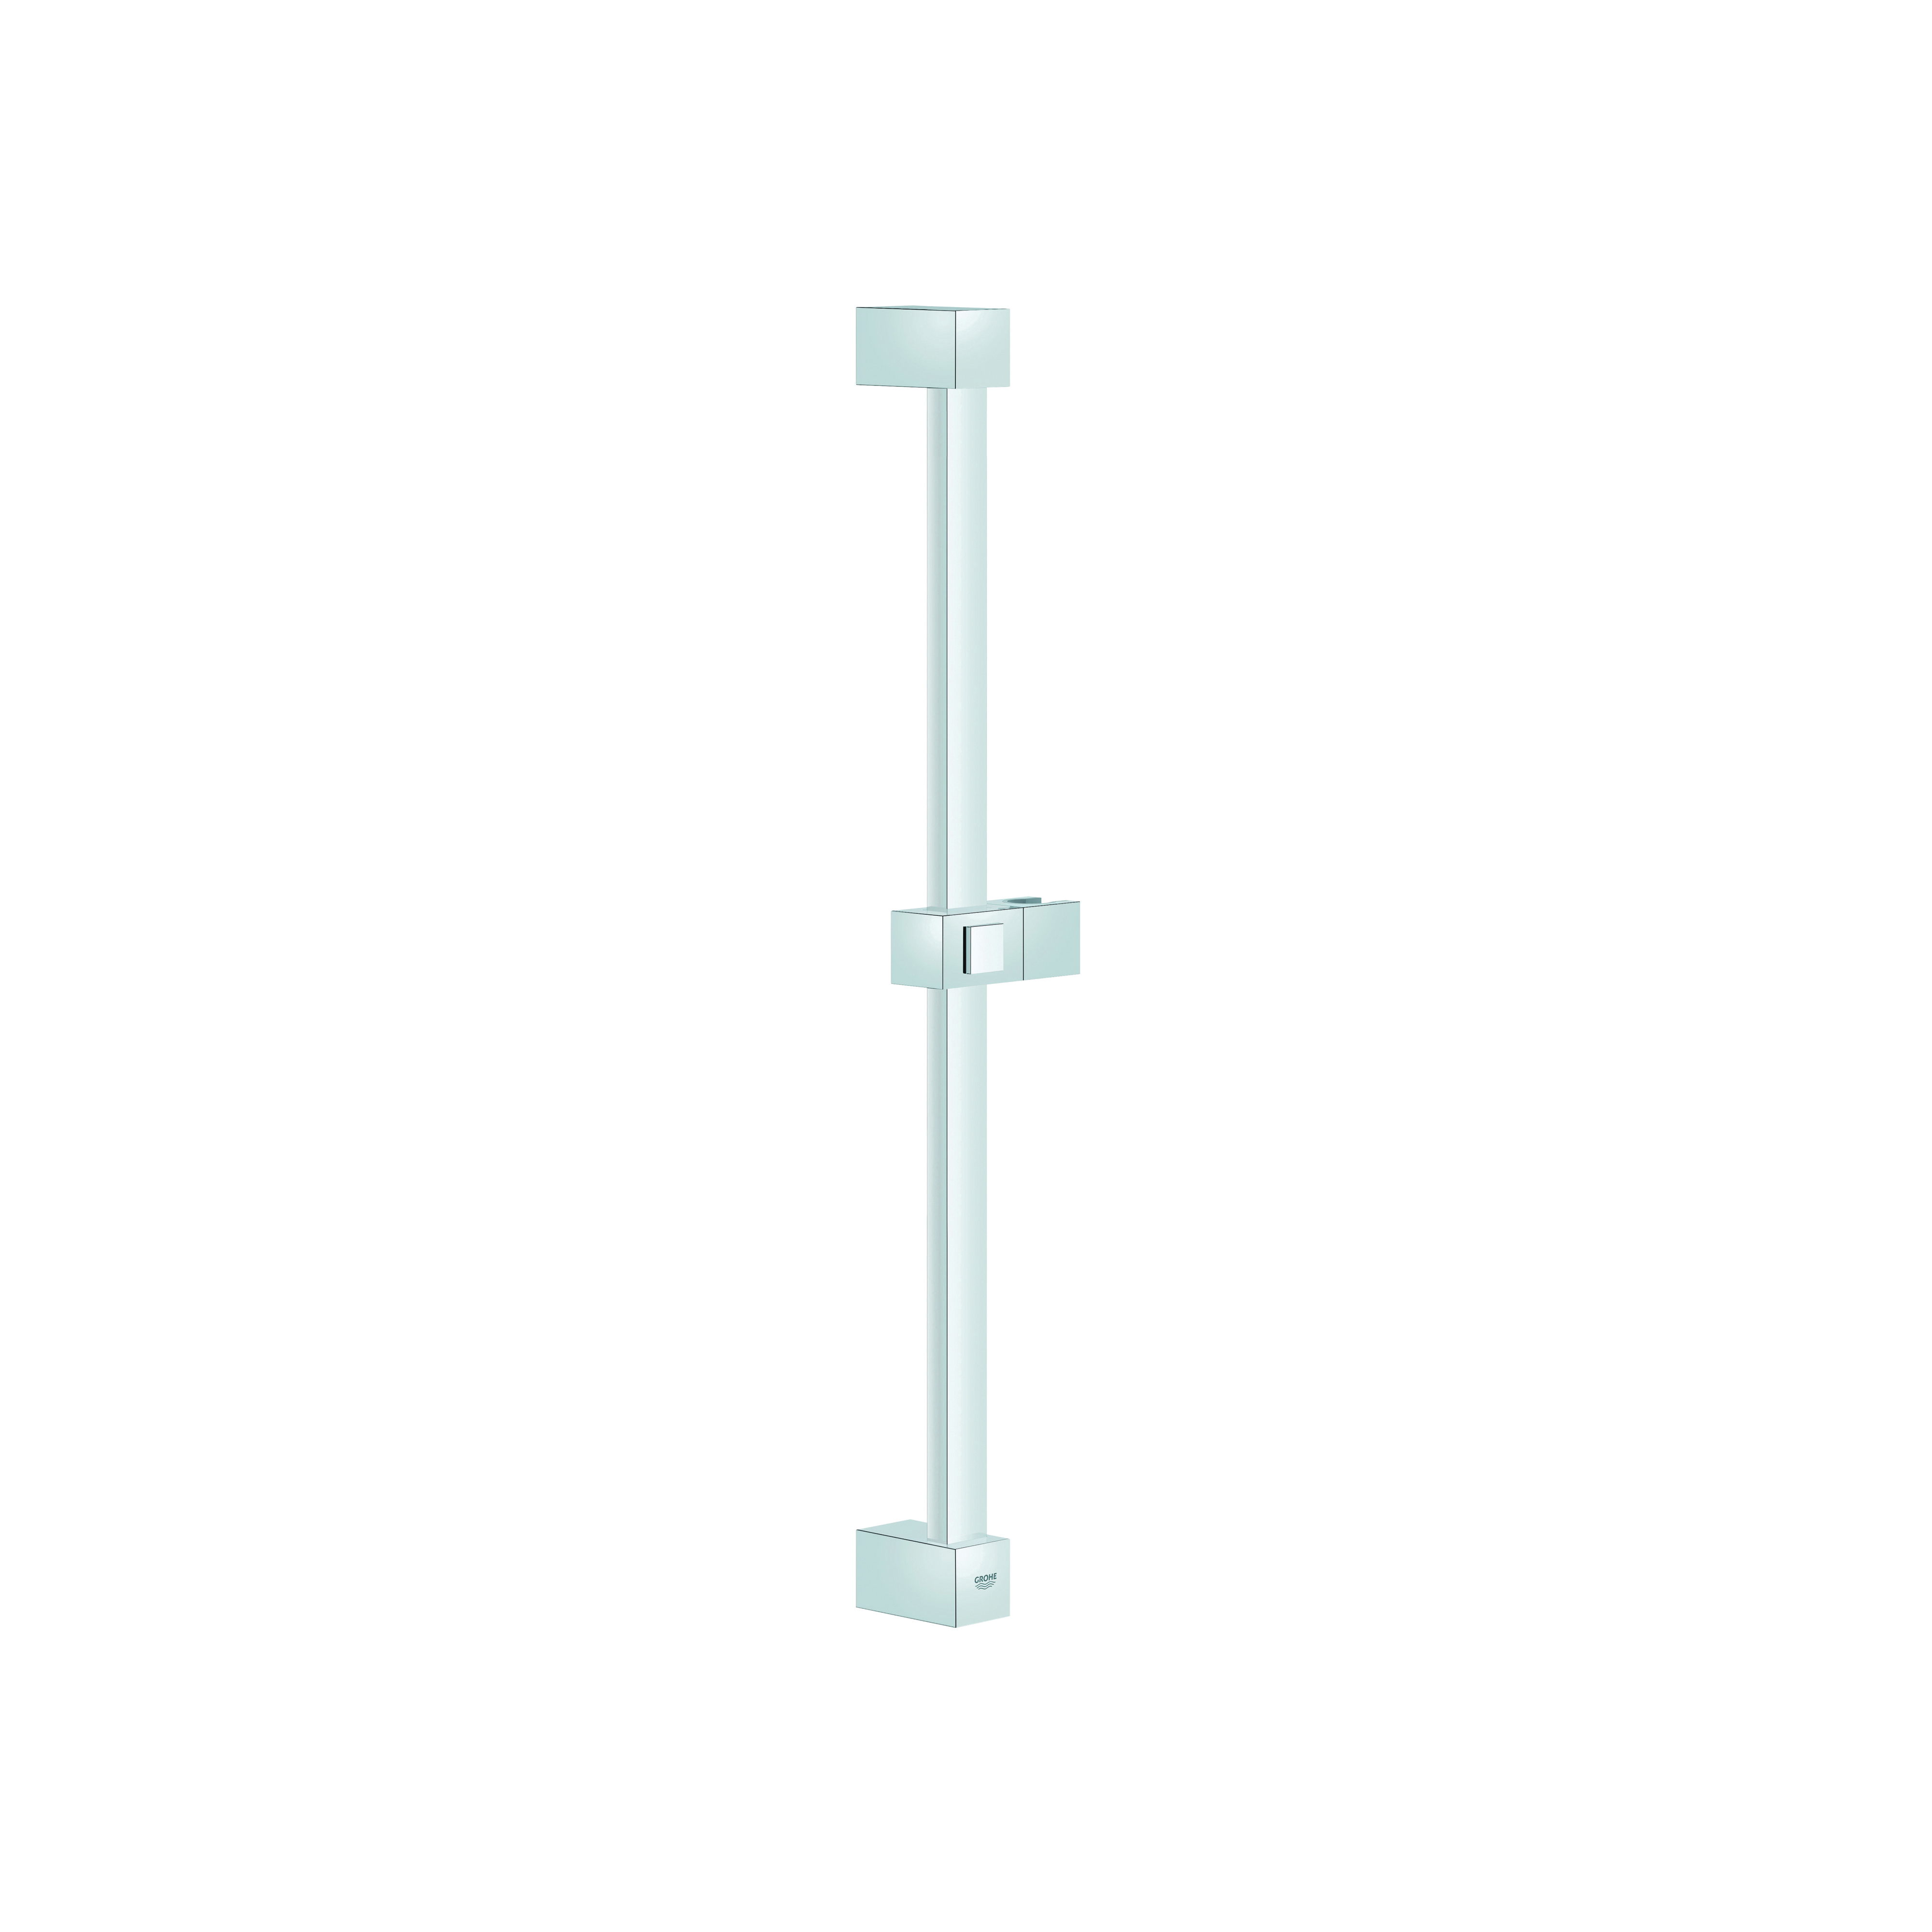 GROHE 27892000 Euphoria Cube Shower Bar, 24 in L Bar, 2-7/8 in OAD, Brass, Chrome Plated, Import